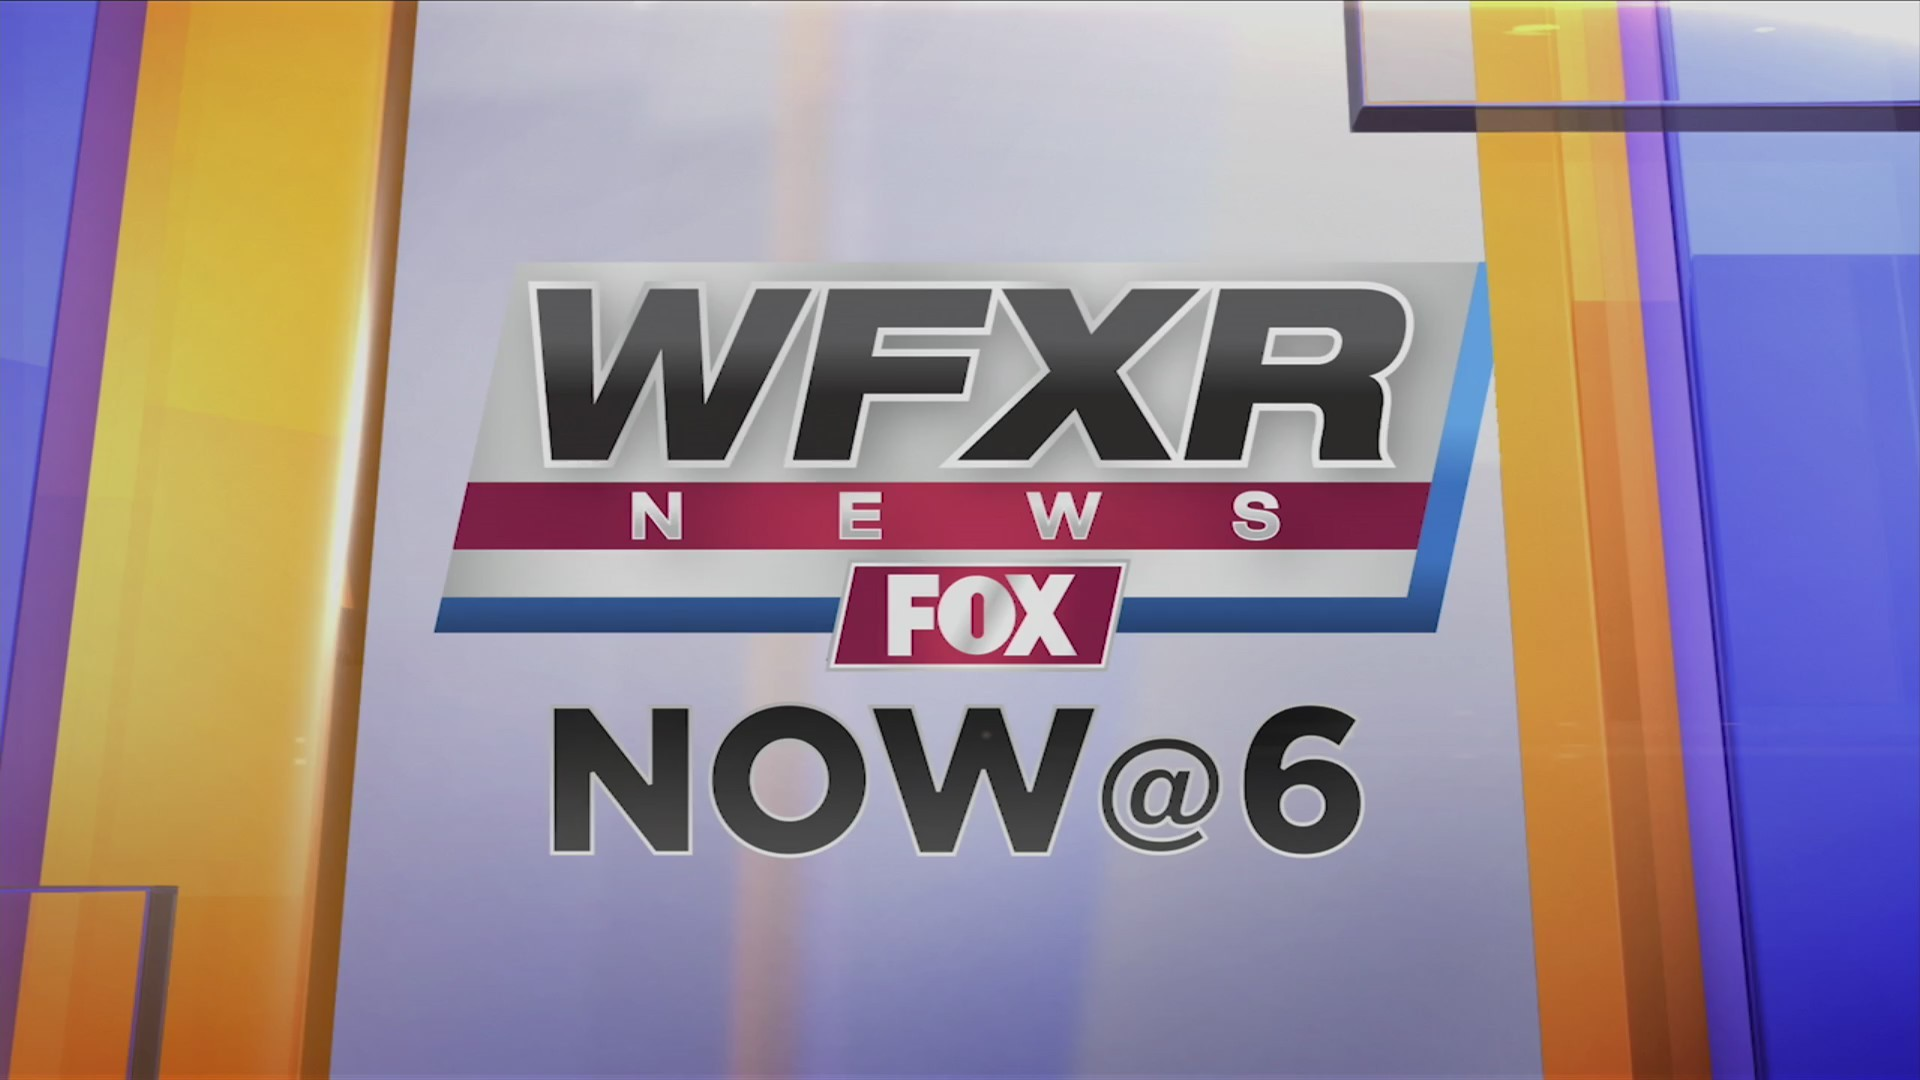 WFXR News NOW@6 March 29